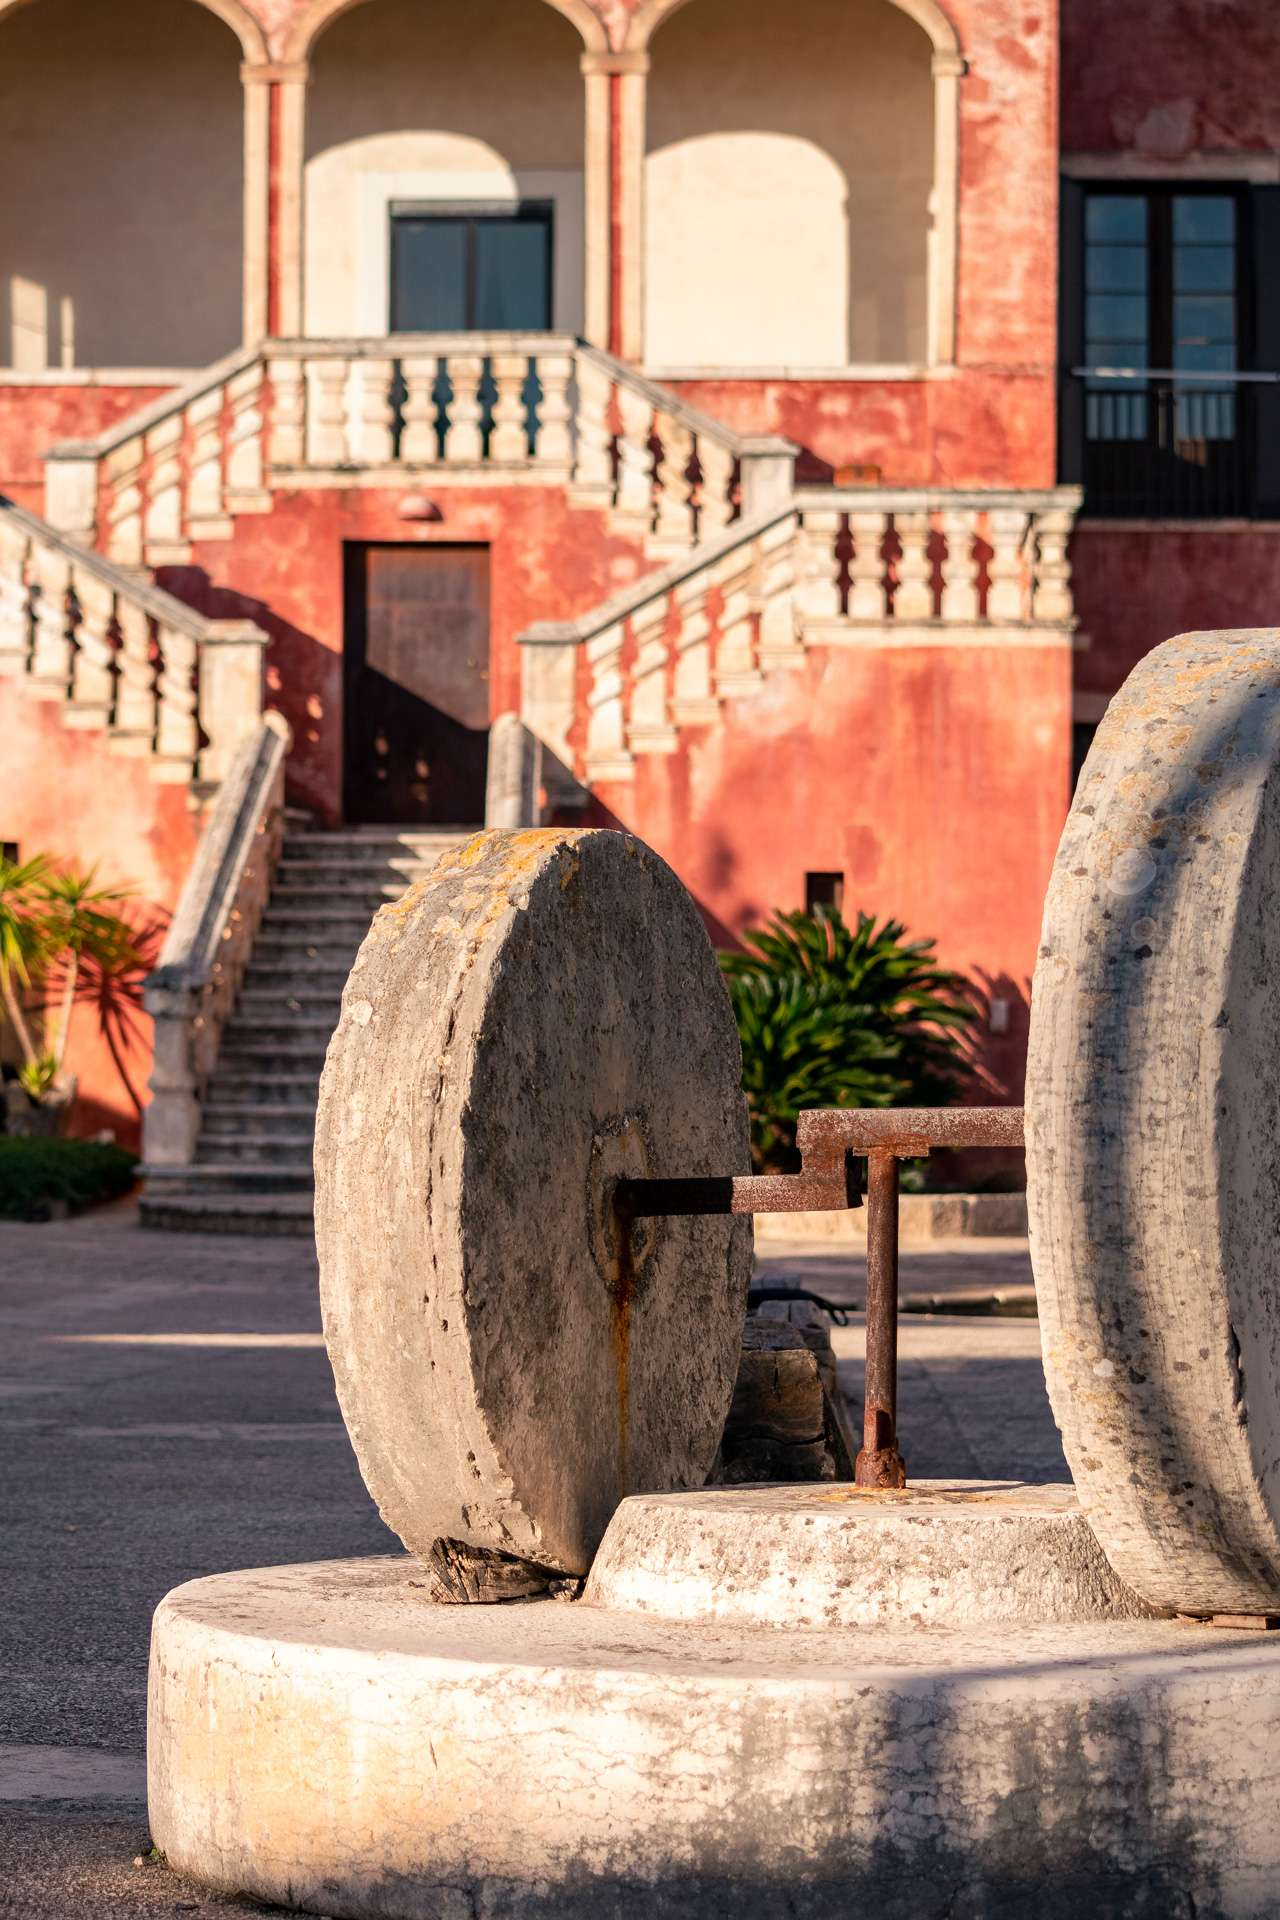 Old grindstone at Masseria Spina Resort in Puglia